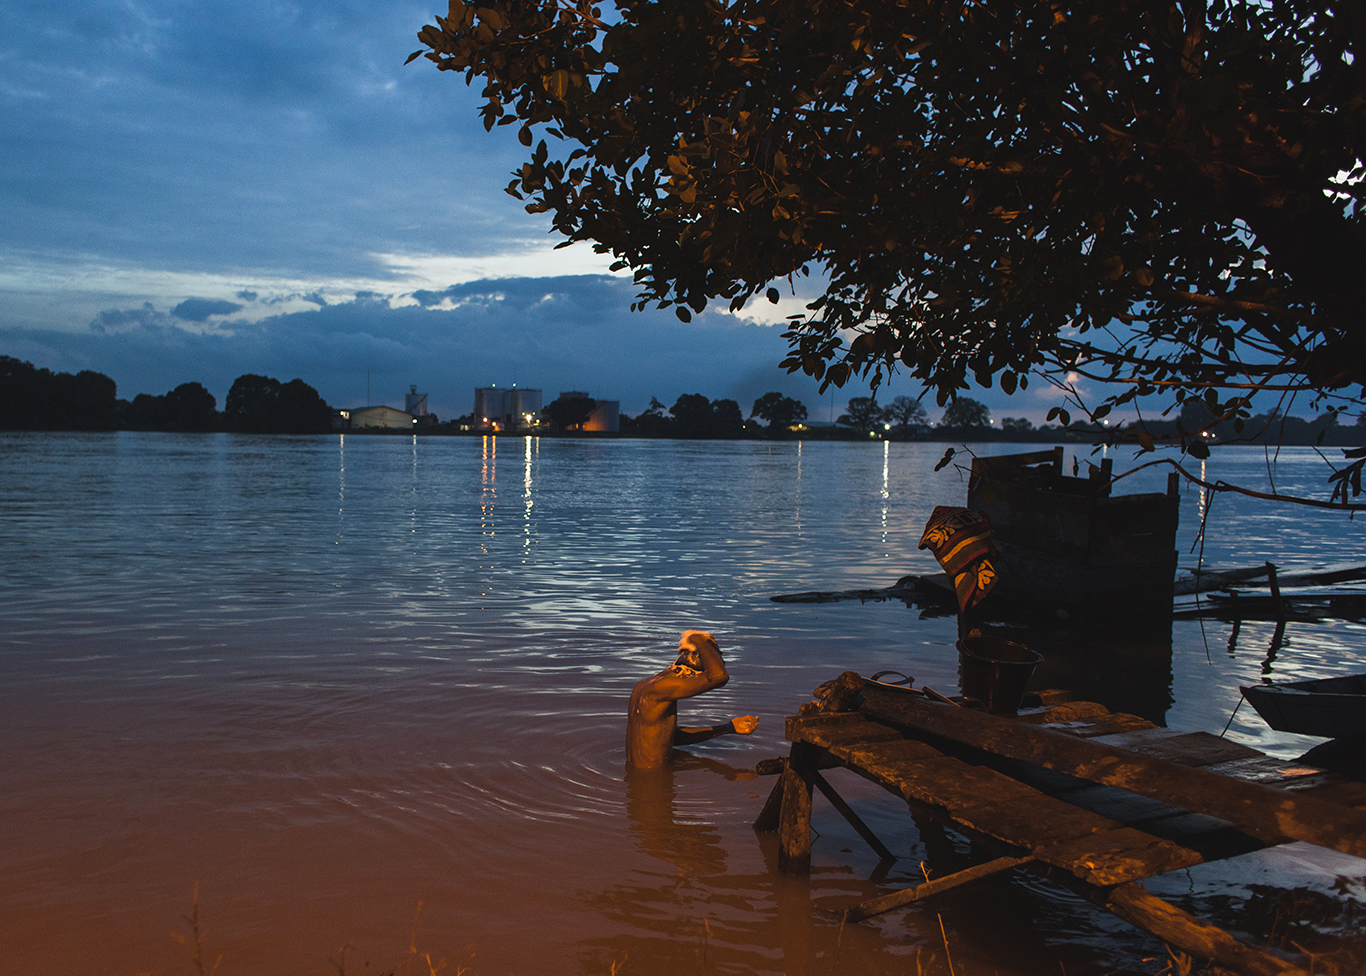 Jambi: The Mystery of A River